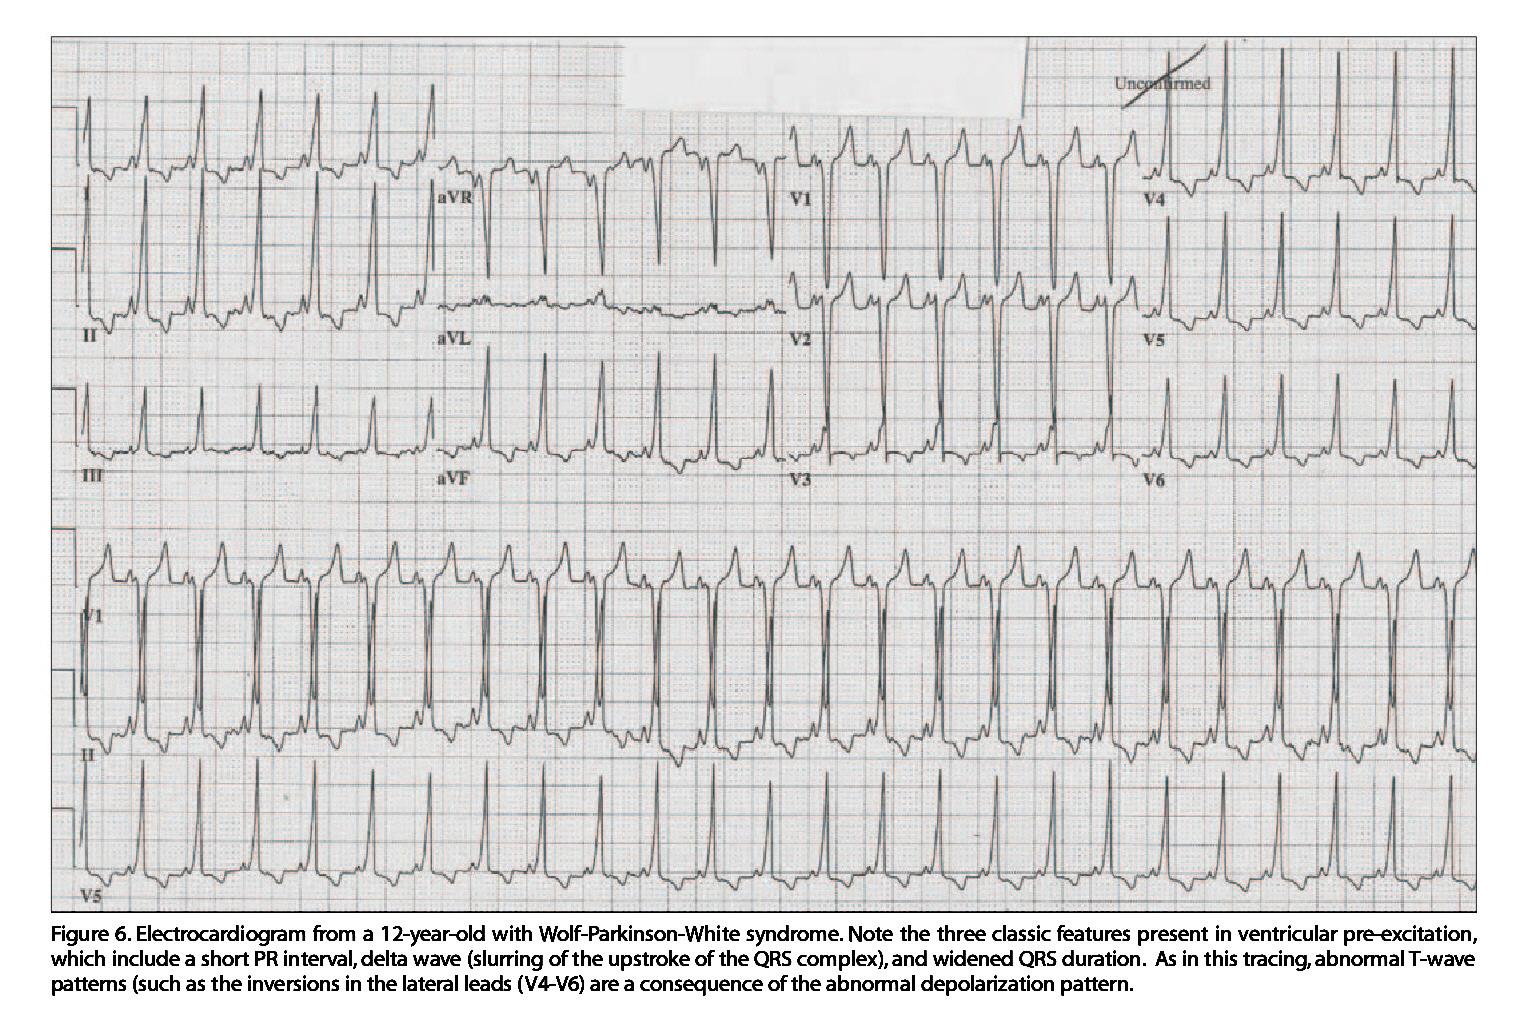 Figure 6. Electrocardiogram from a 12-year-old with Wolf-Parkinson-White syndrome. Note the three classic features present in ventricular pre-excitation, which include a short PR interval, delta wave (slurring of the upstroke of the QRS complex),and widened QRS duration. As in this tracing, abnormal T-wave patterns (such as the inversions in the lateral leads (V4-V6) are a consequence of the abnormal depolarization pattern.